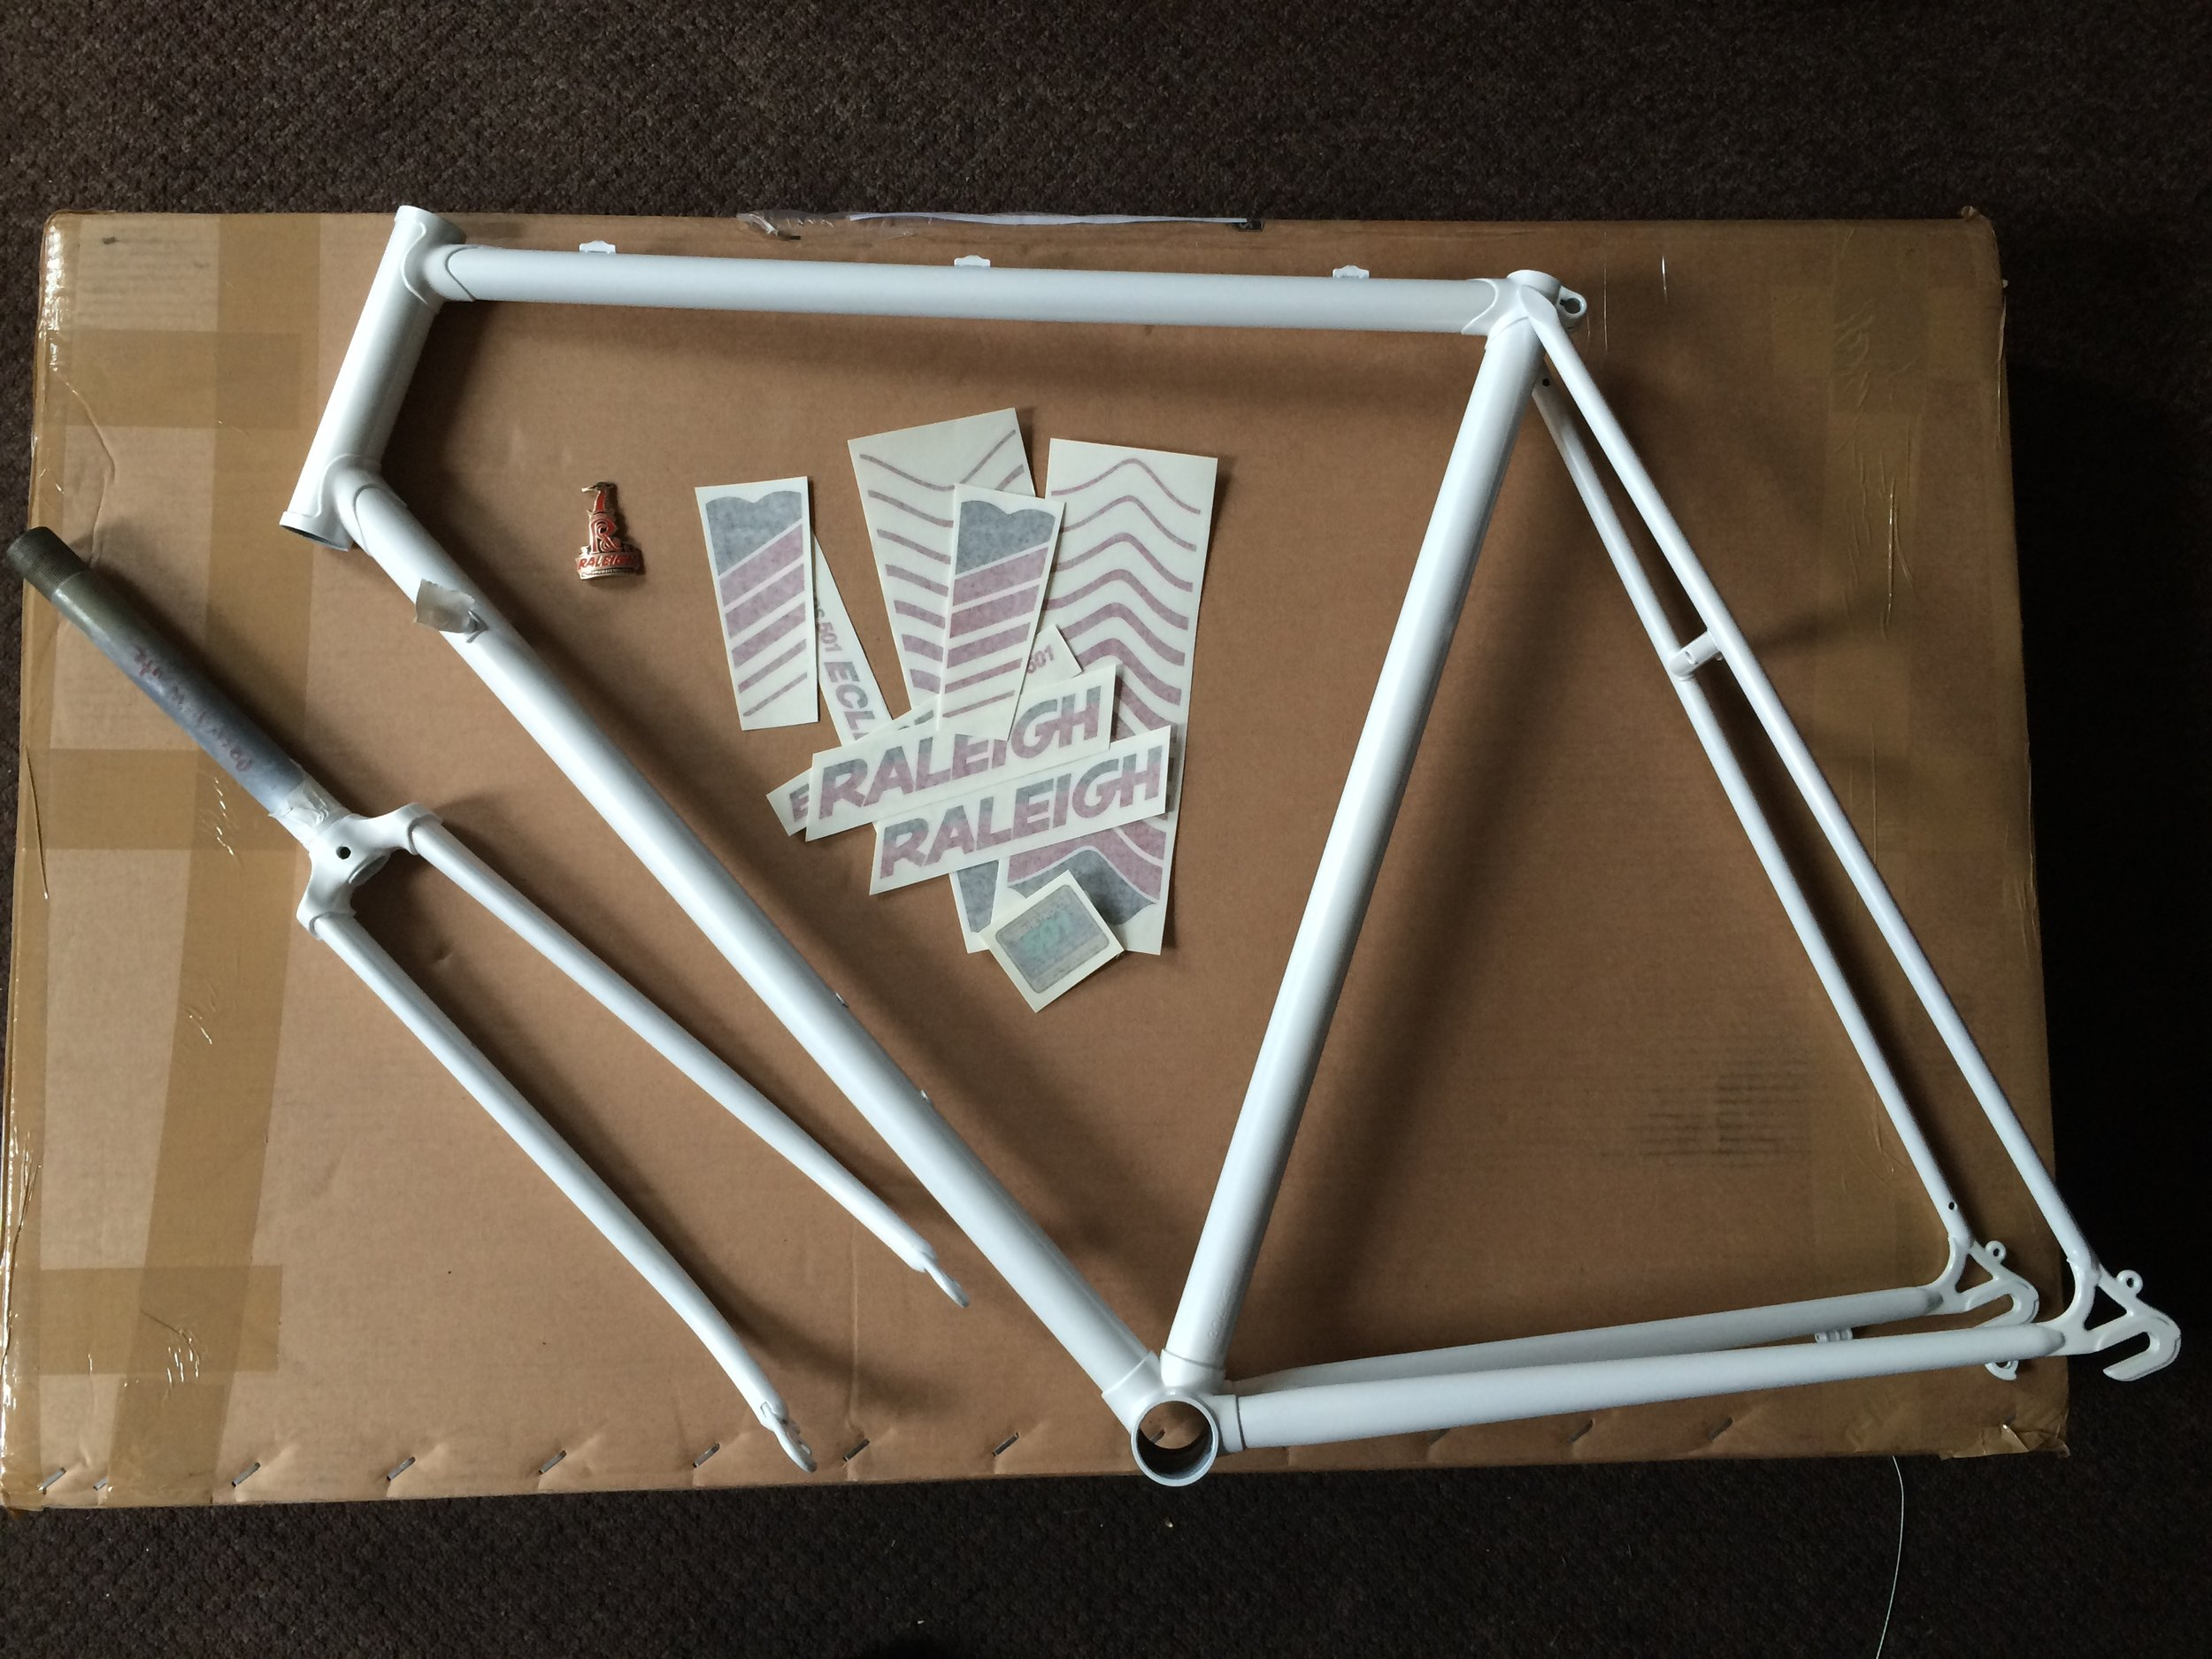 The repainted frame and forks ready for the full set of decals to be applied